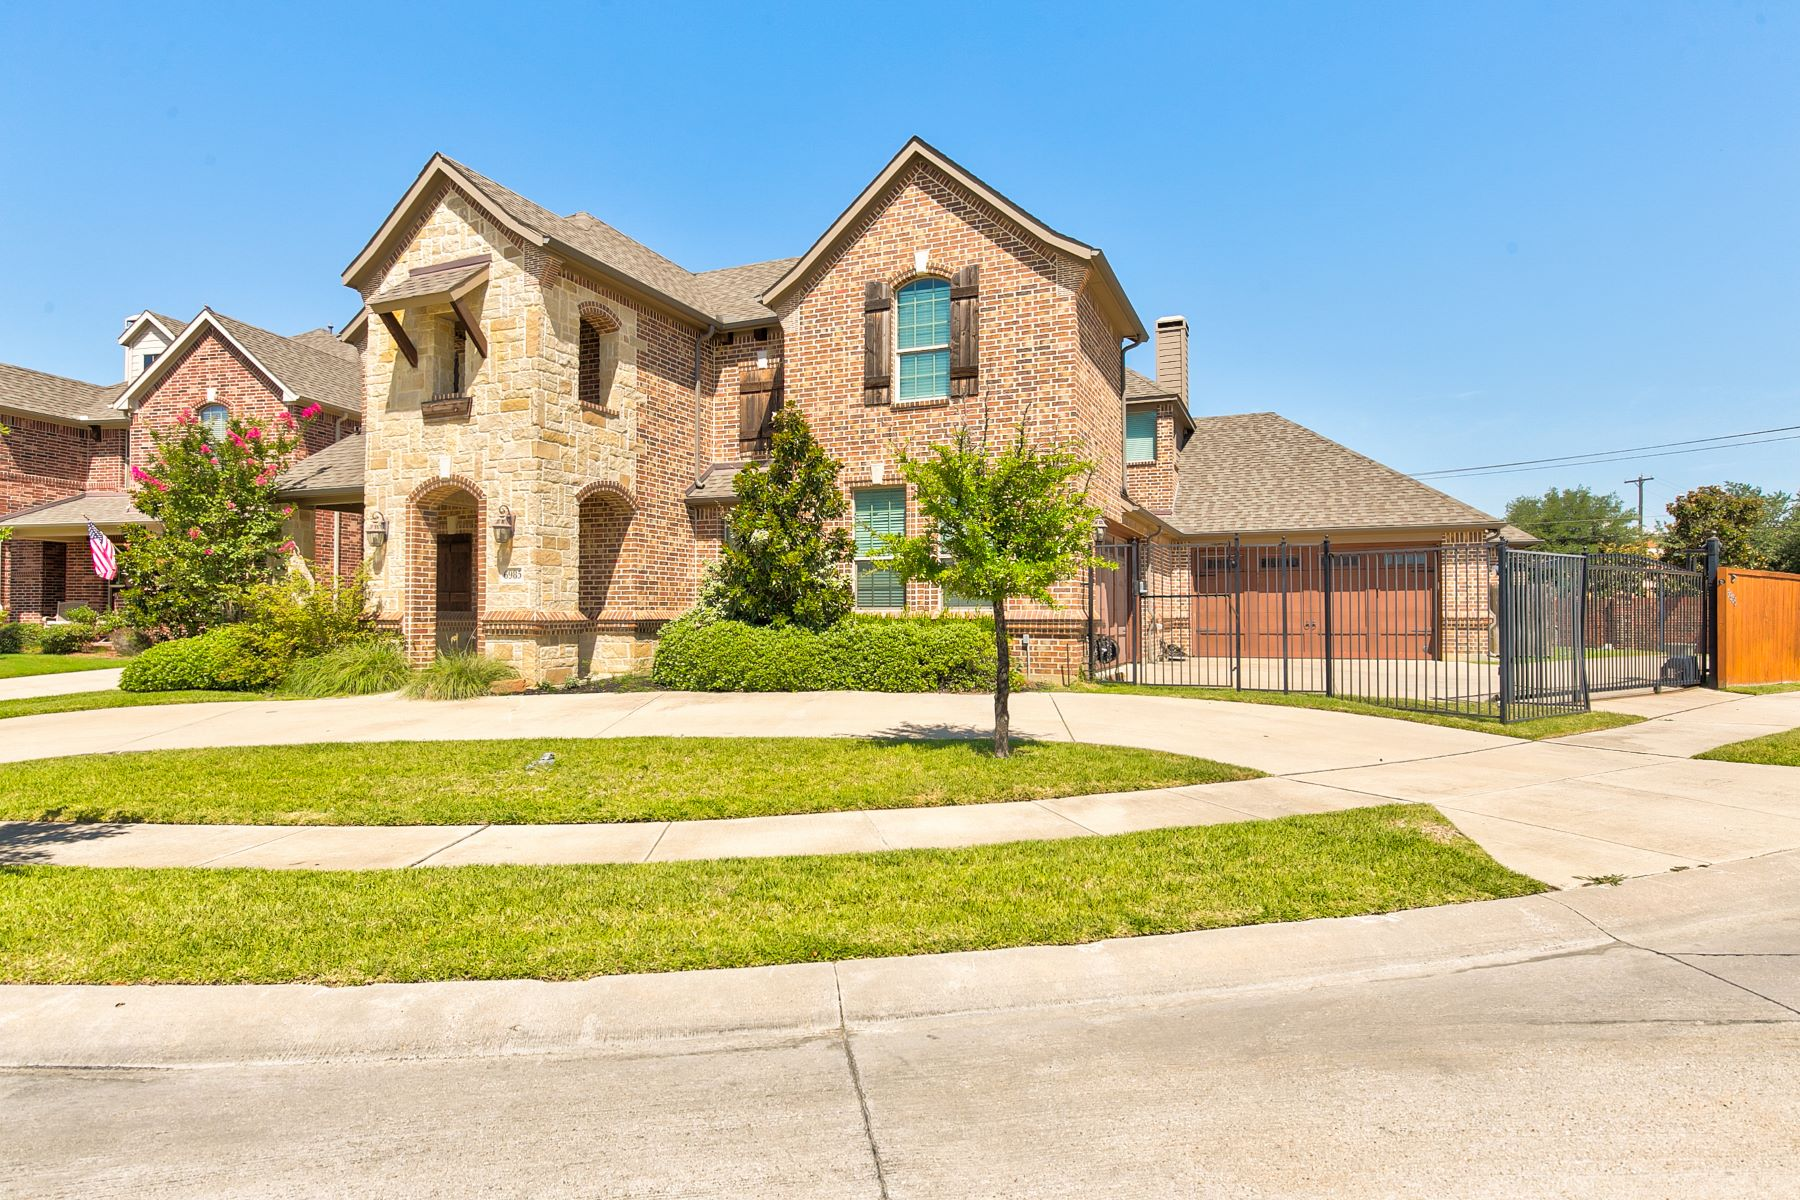 Single Family Homes for Sale at Beautiful Five Bedroom Family Home in North Richland Hills, TX 6985 Warbler Lane North Richland Hills, Texas 76182 United States